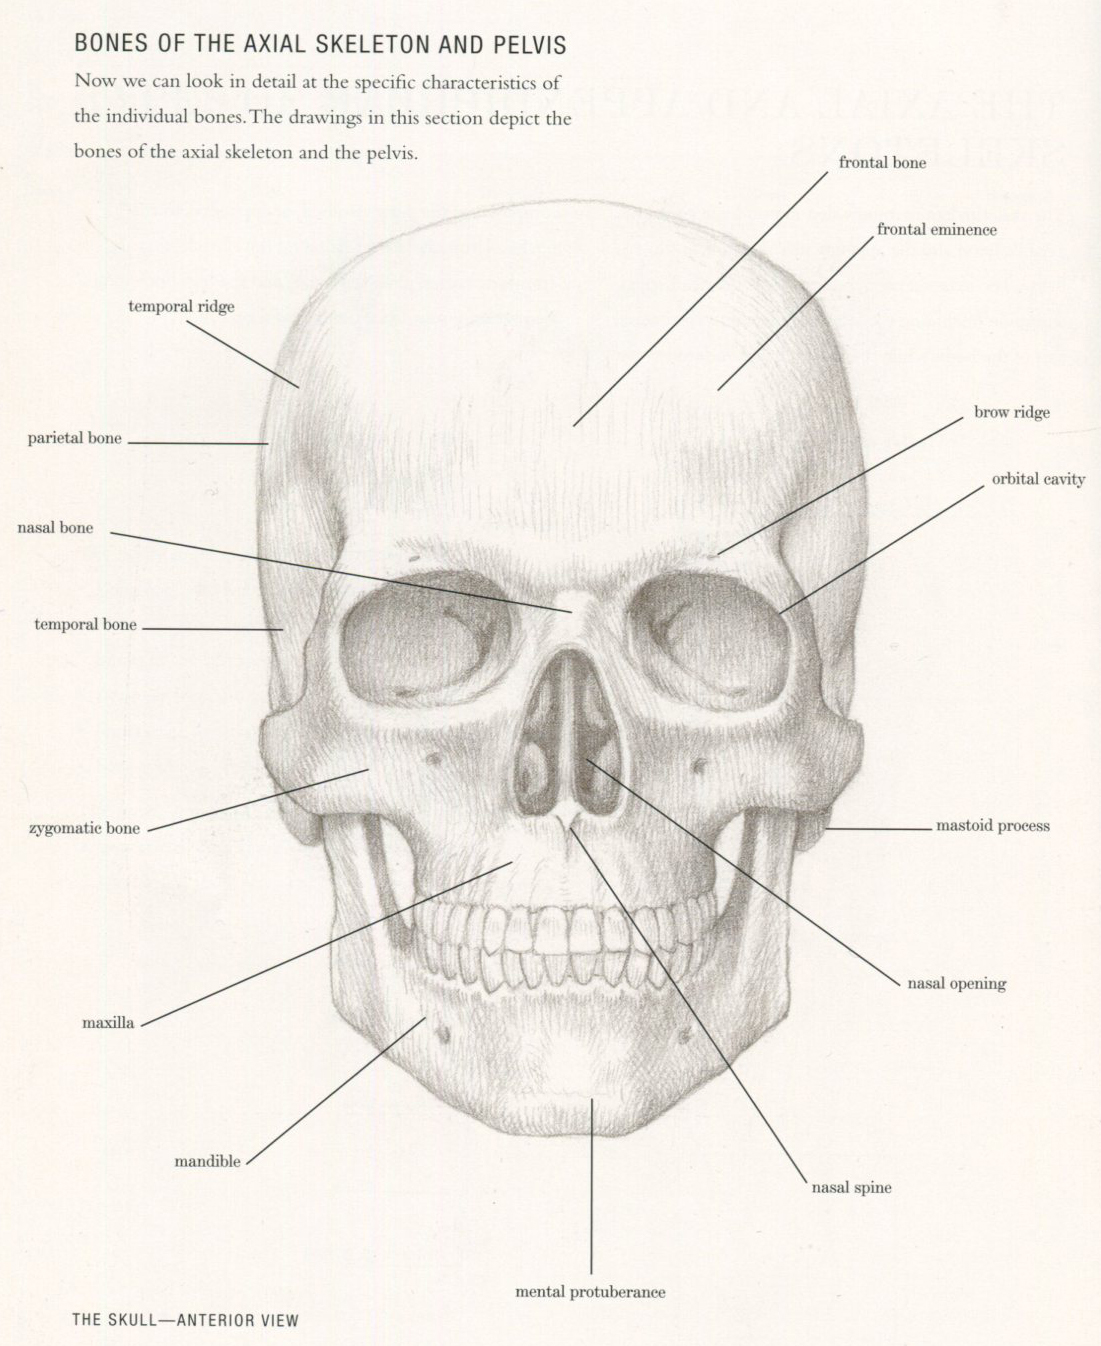 small resolution of all images taken from basic human anatomy by roberto osti